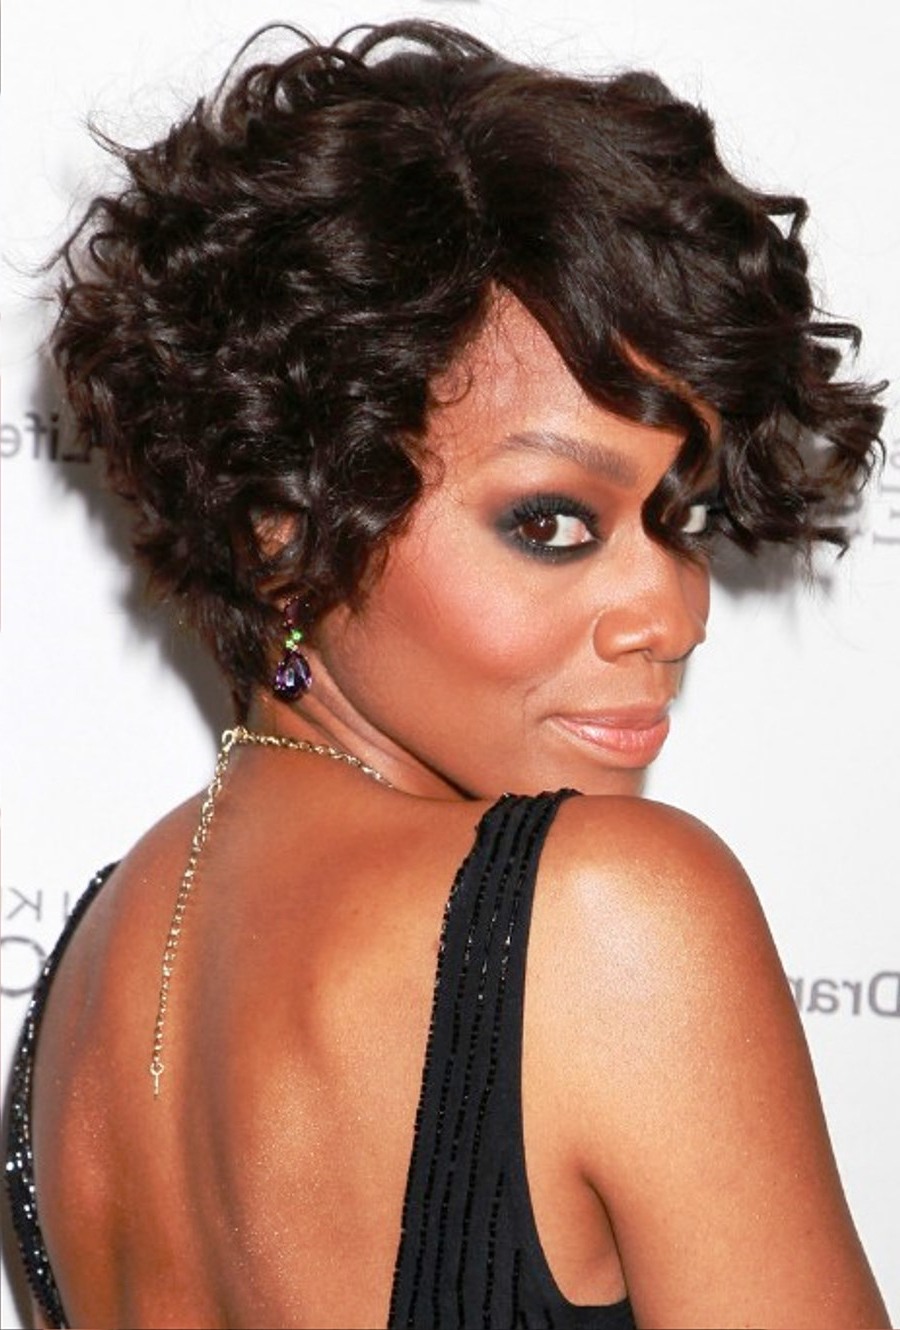 14 Most Beautiful Short Curly Hairstyles And Haircuts For Women Throughout Short Bob For Curly Hairstyles (View 10 of 20)